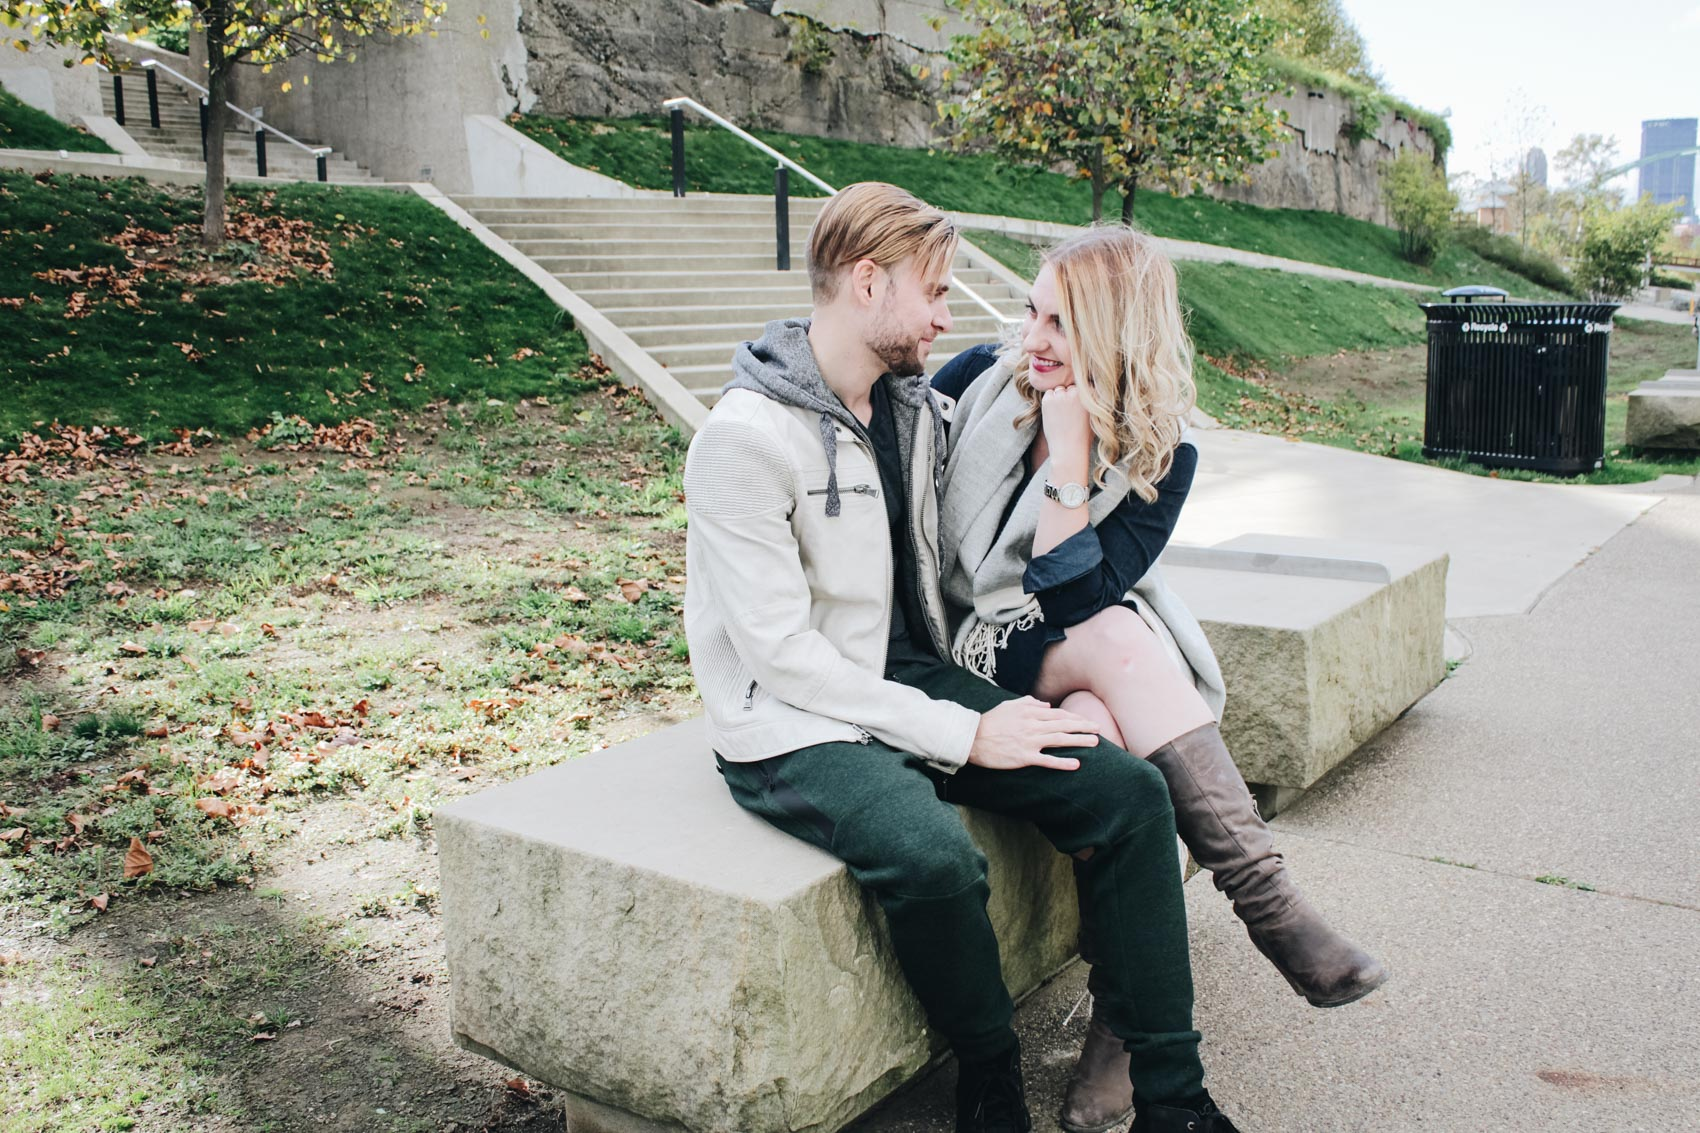 In this post, we're sharing how our planned out day went all wrong and then turned into an unexpected escape. It also includes some fall outfit inspiration!